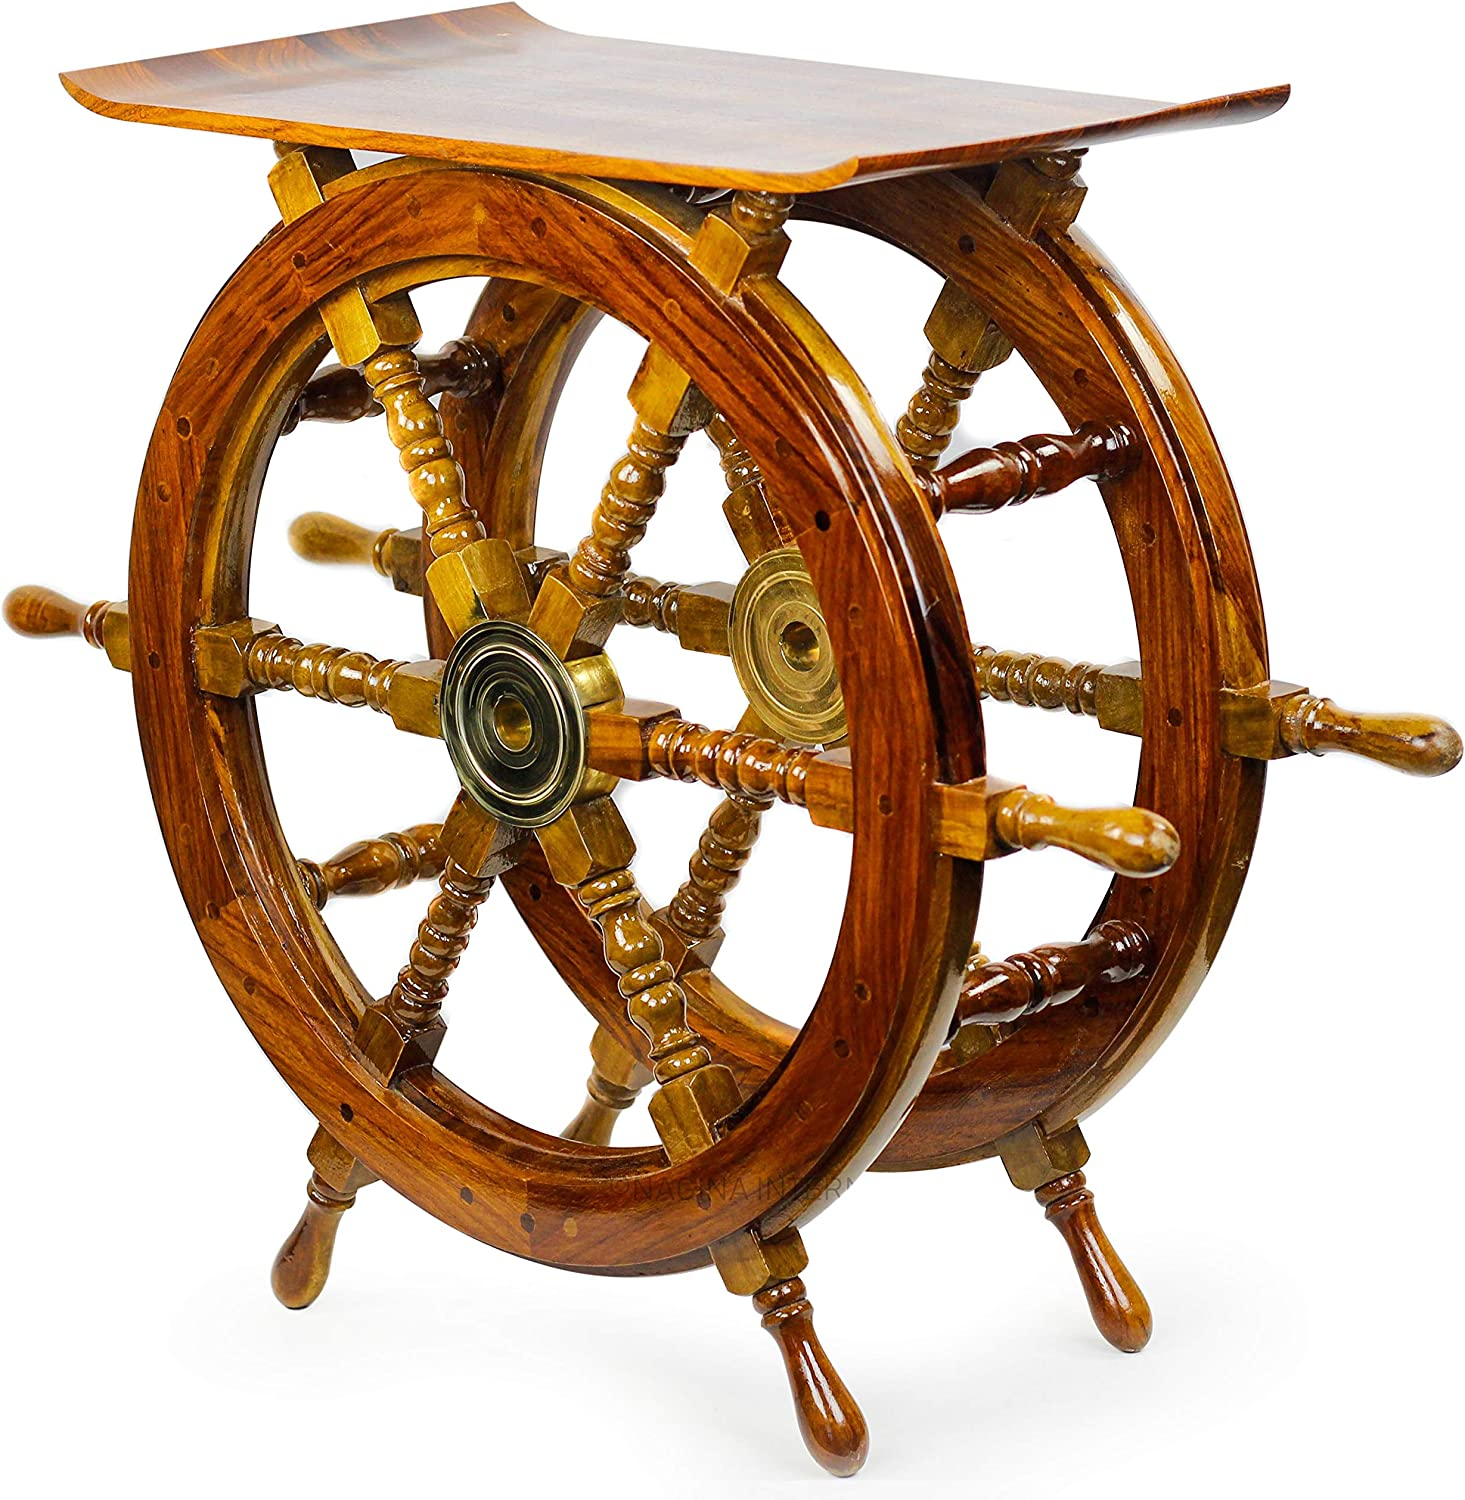 Nagina International, Handmade Indian Sheesham Pirate Ship Wheel End Table or Nautical Side Table Perfect Display Unit